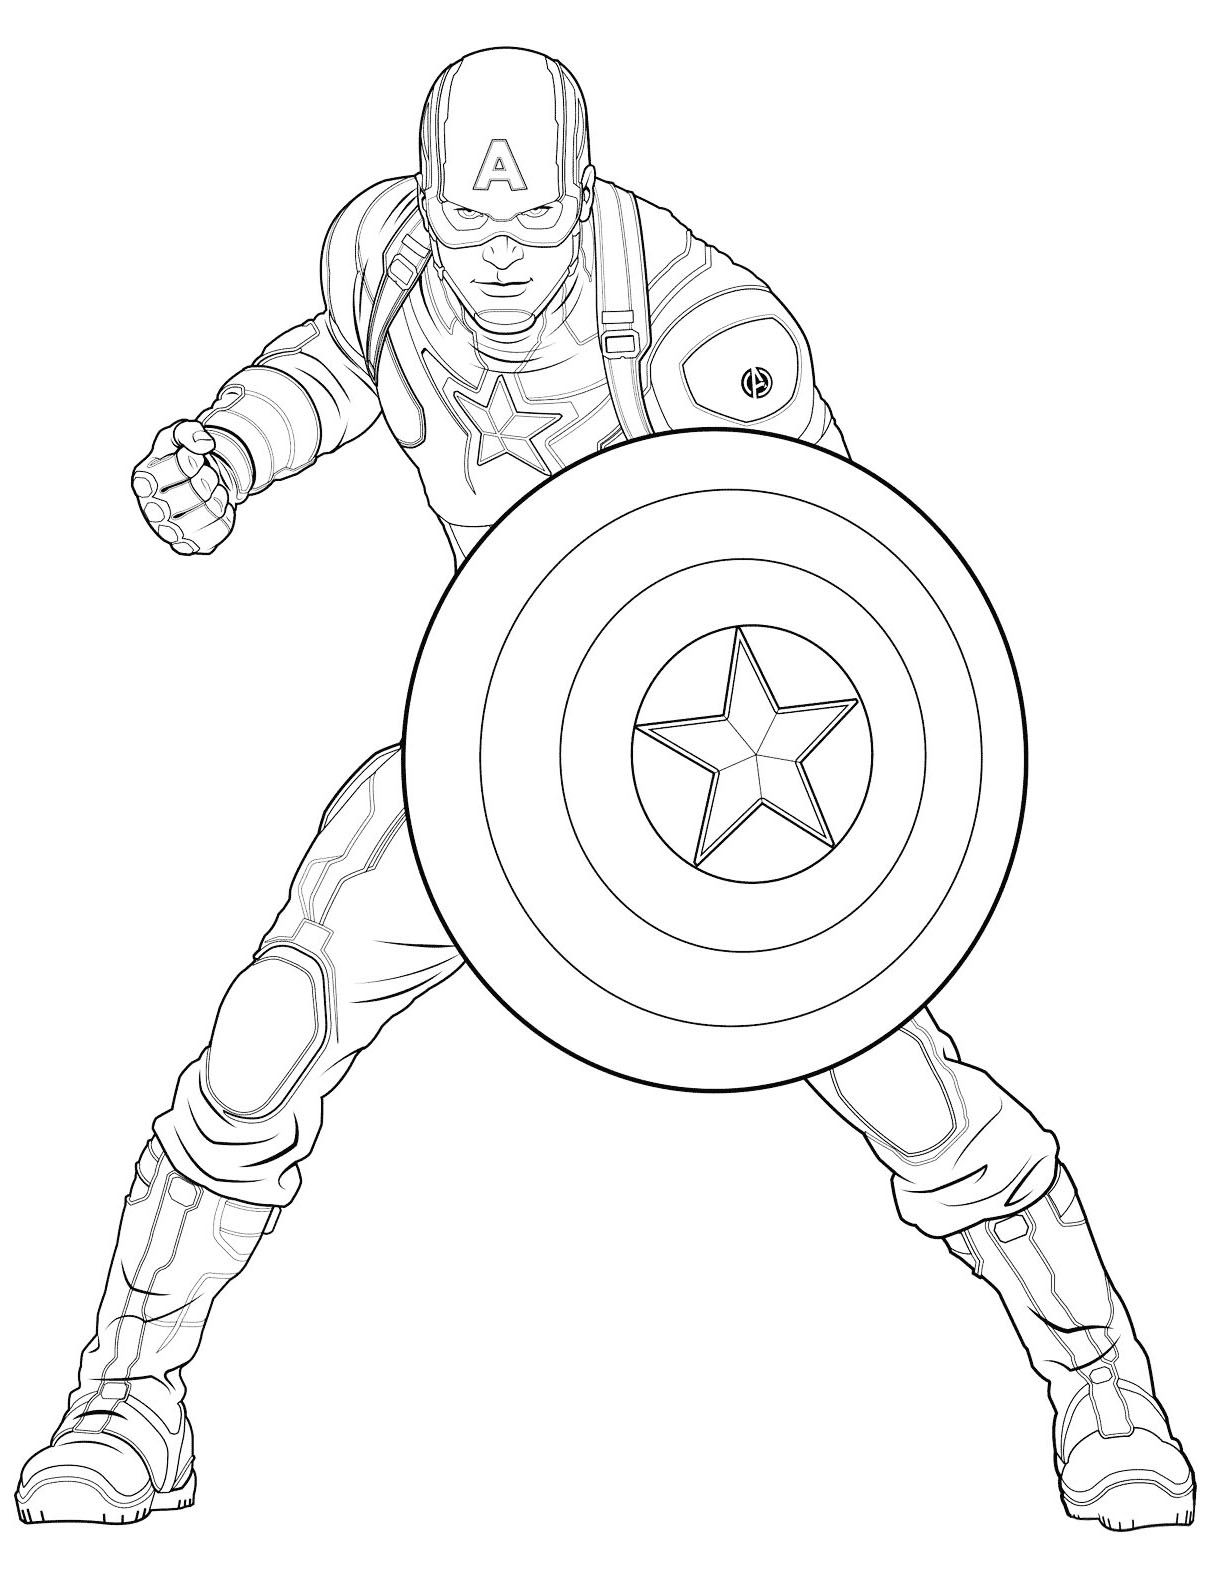 Easy Free Captain America Coloring Page To Download Superhero Coloring Pages Avengers Coloring Pages Captain America Coloring Pages